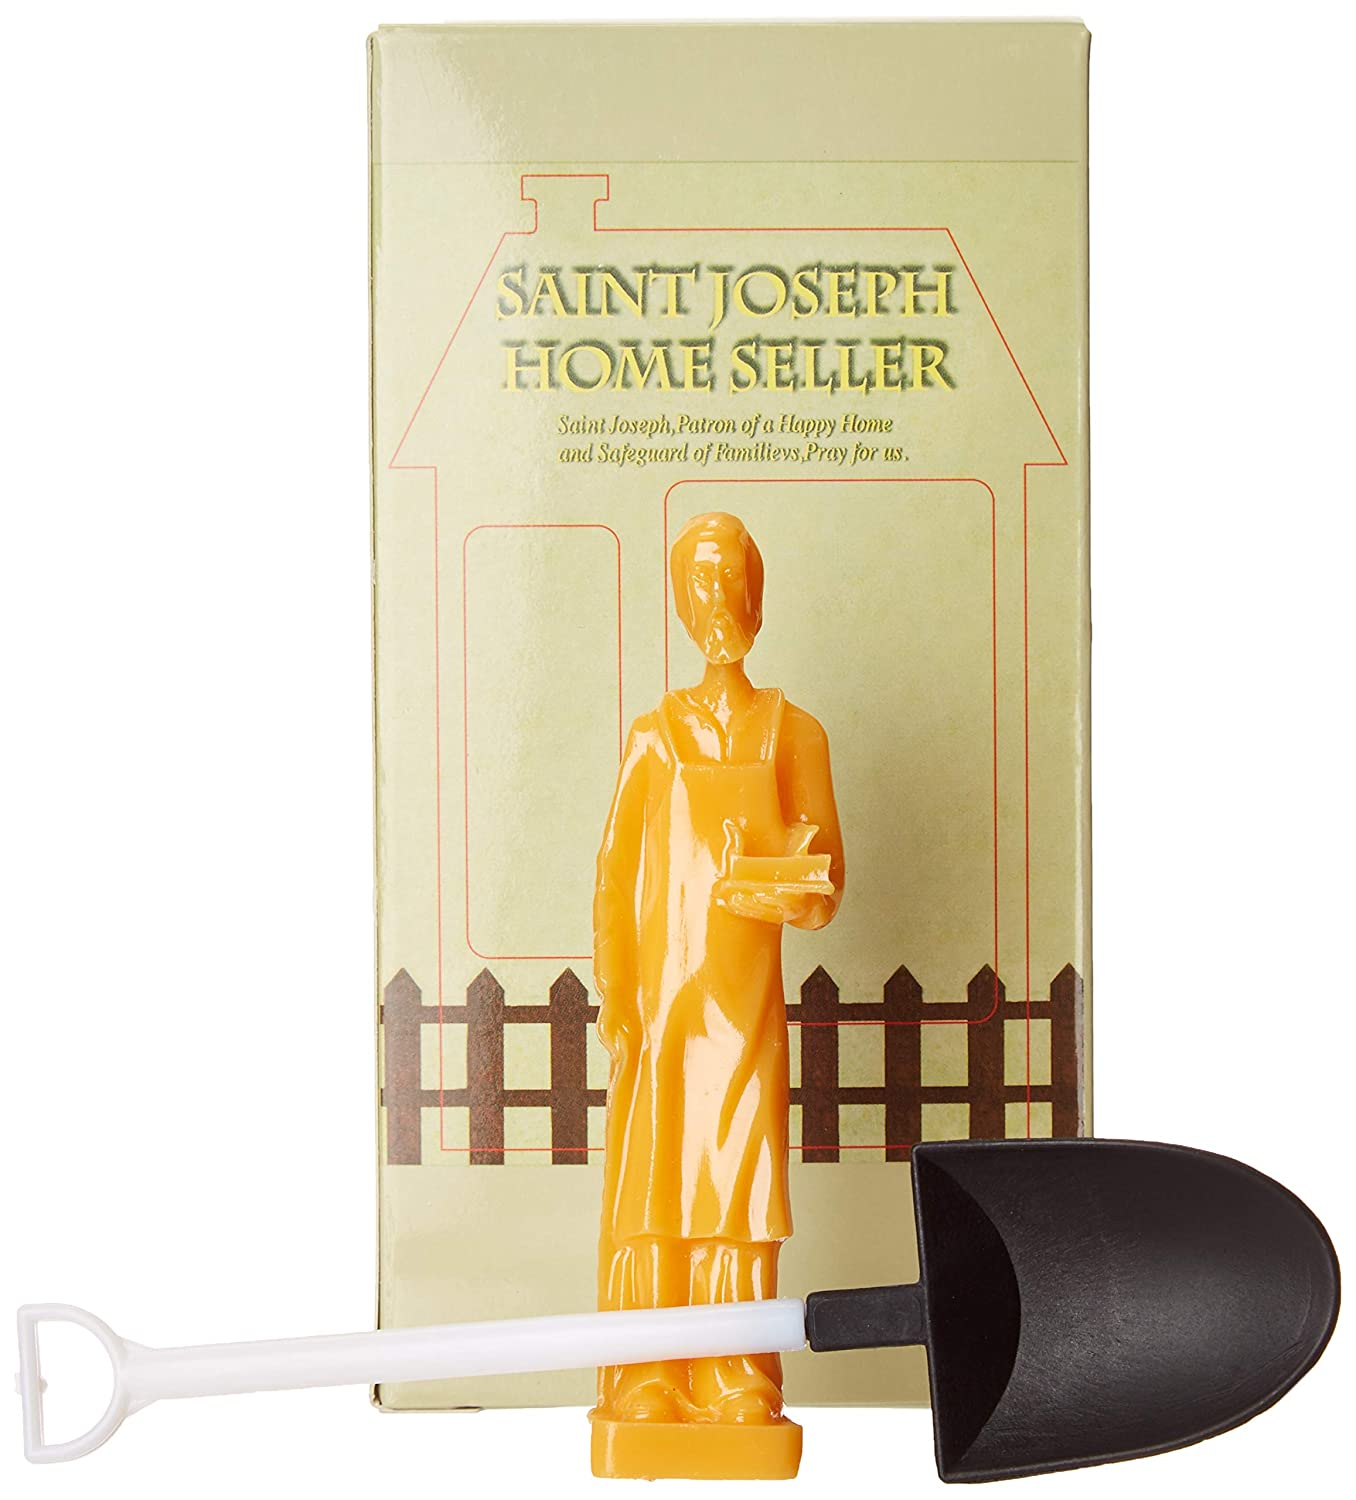 DOZENEGG Saint Joseph Religious Authentic Statue Home Seller Kit with Prayer Card and Instructions Includes Mini Shovel with Plastic Gloves.